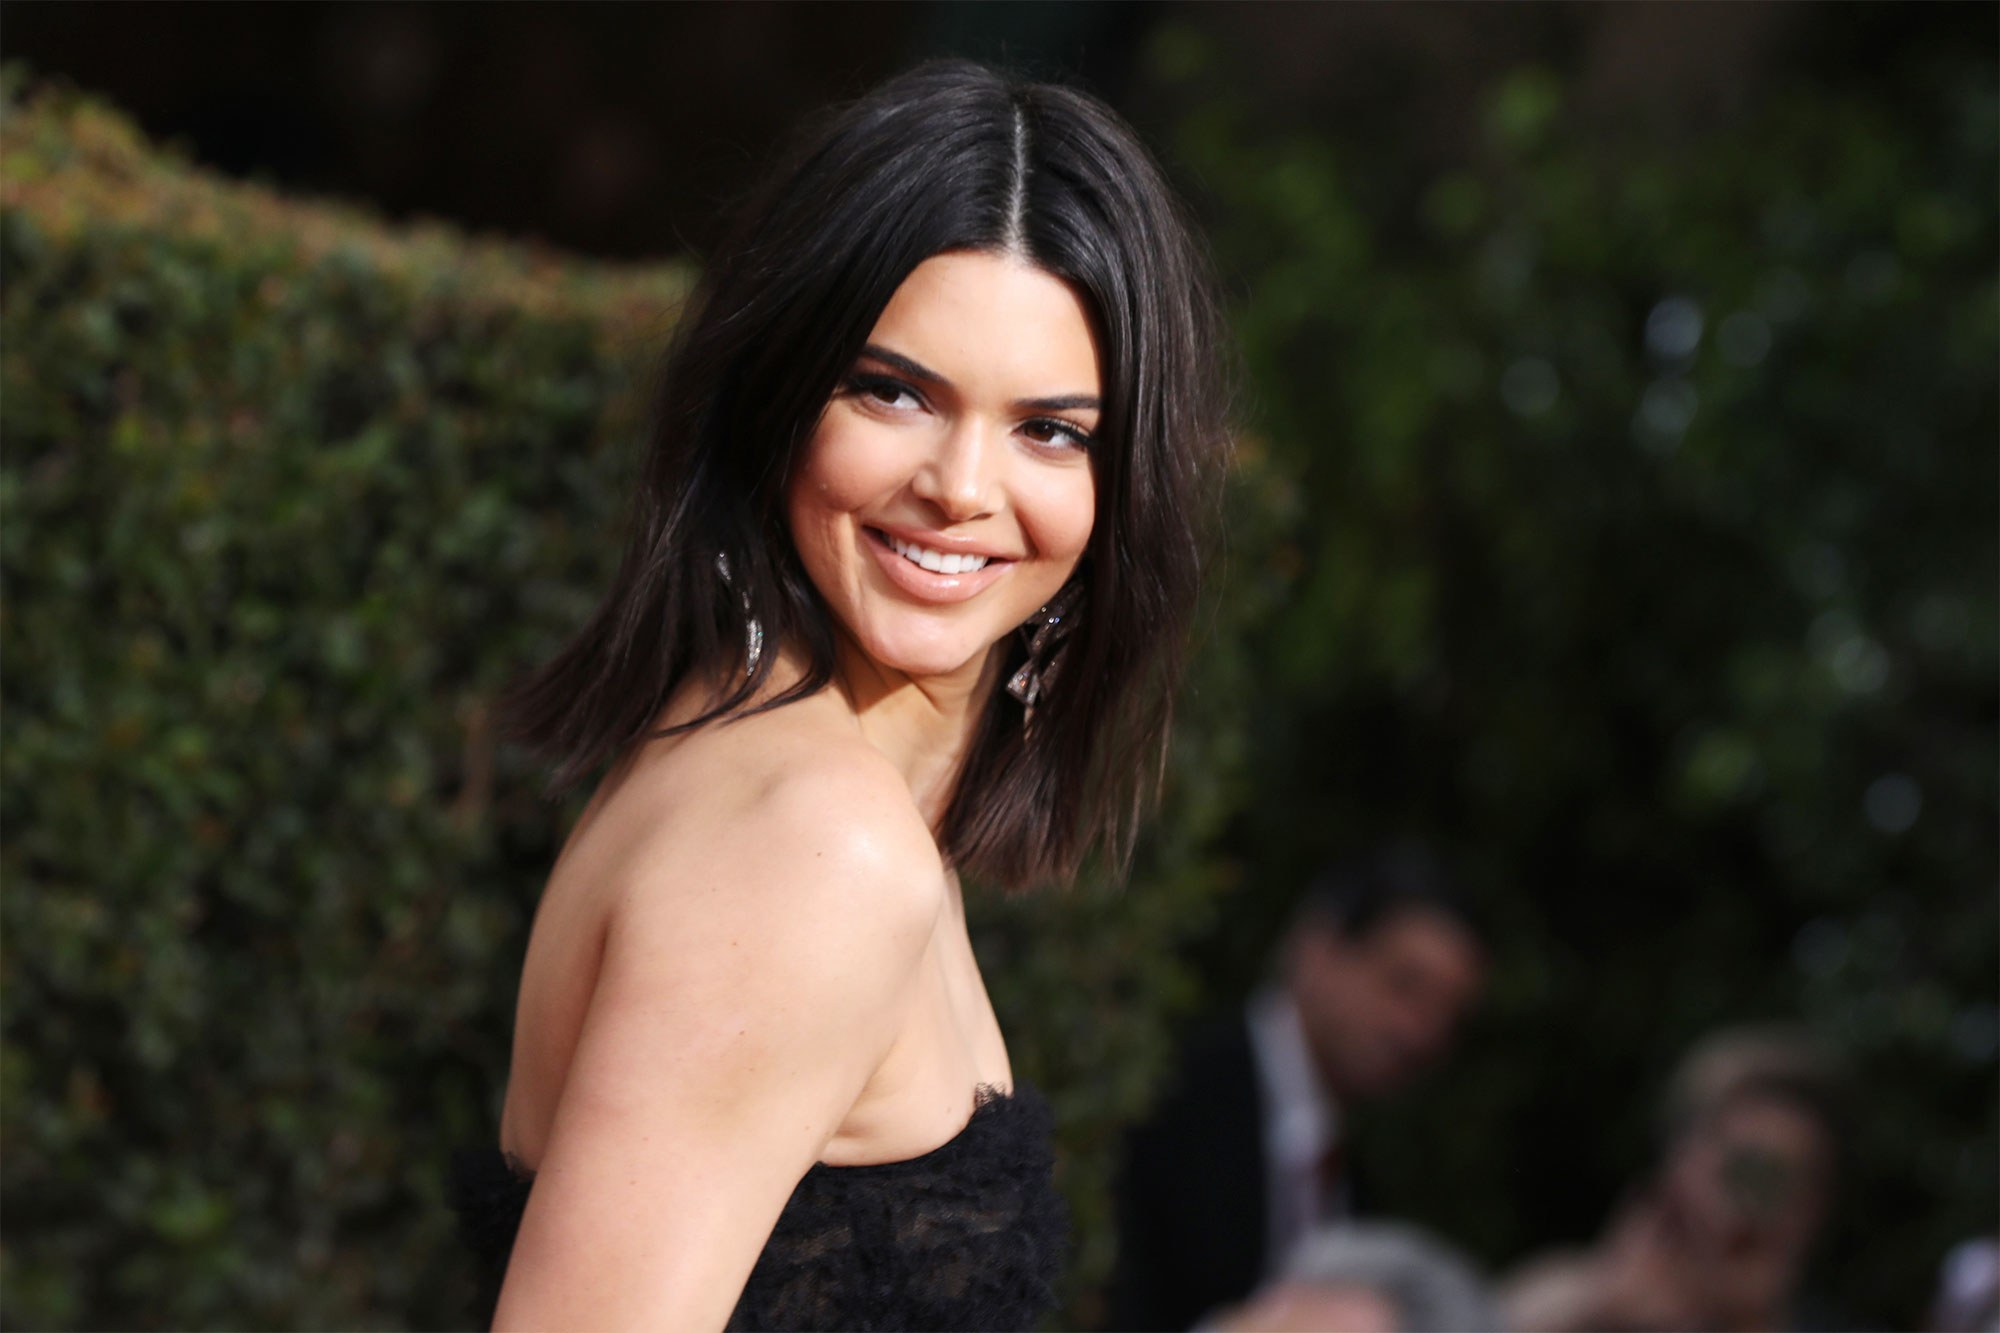 kendall-jenner-shares-photo-with-the-whole-kuwk-family-and-meme-of-her-being-the-only-one-avoiding-pregnancies